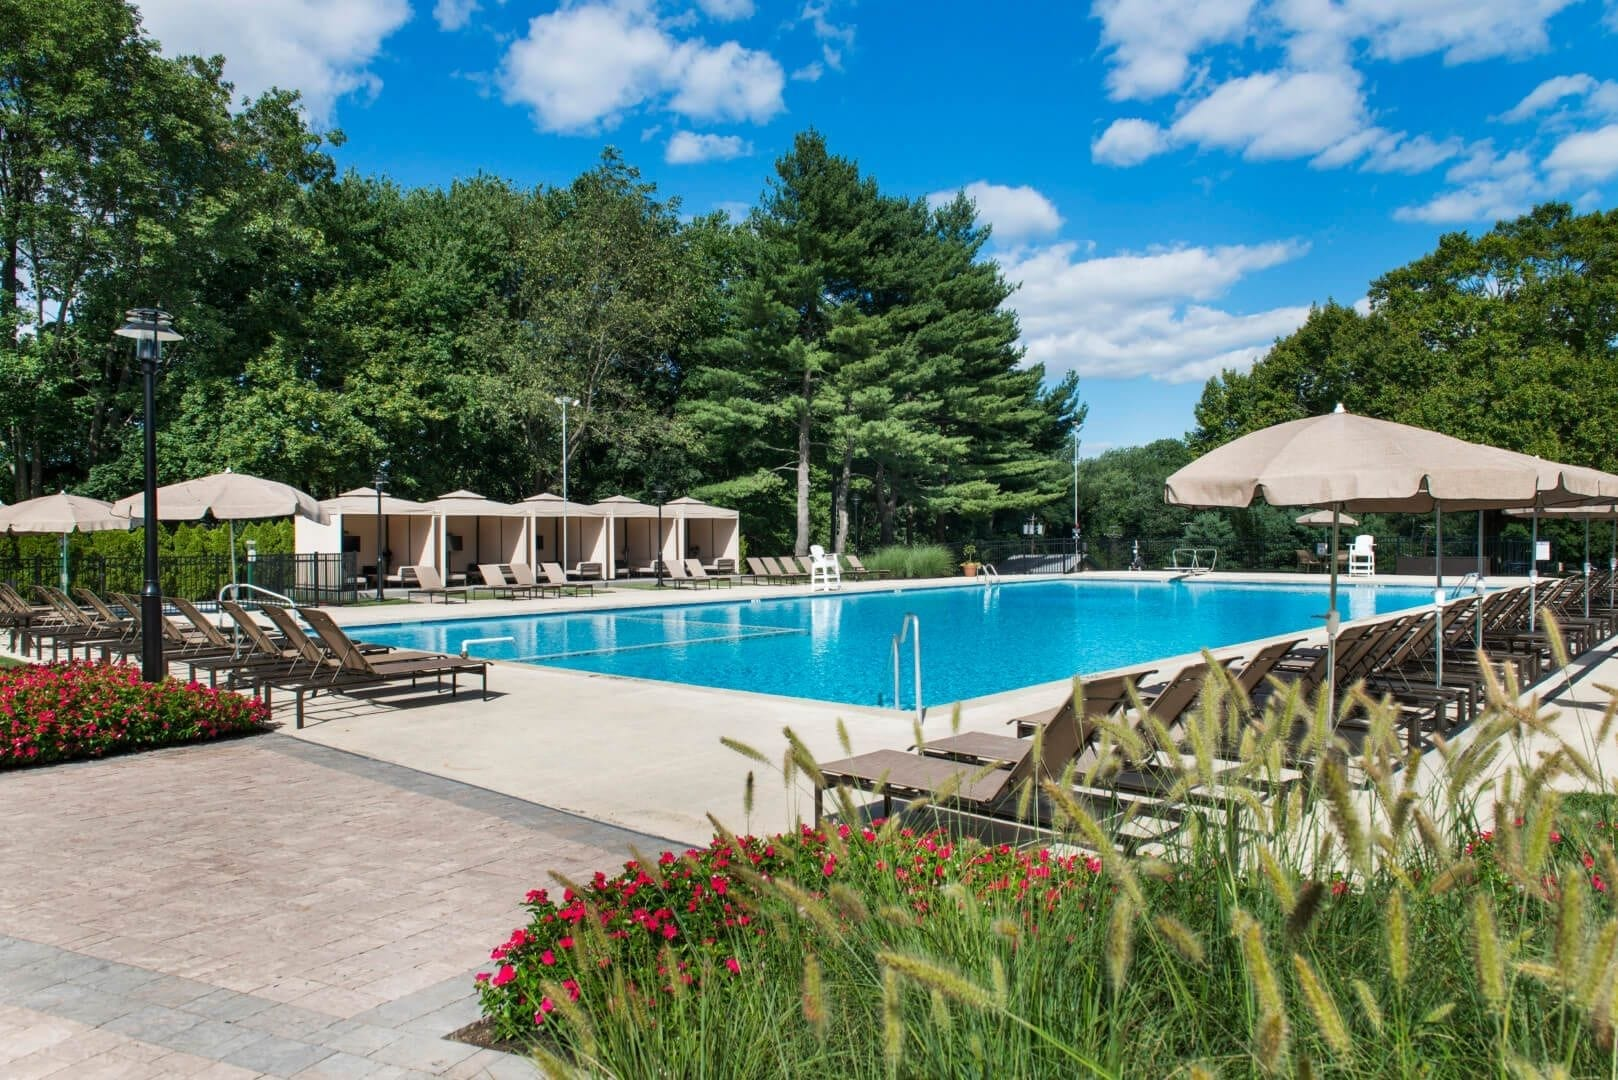 Edgewood Country Club Is Bergen County 39 S Newest Family Resort Best Of Nj Nj Lifestyle Guides